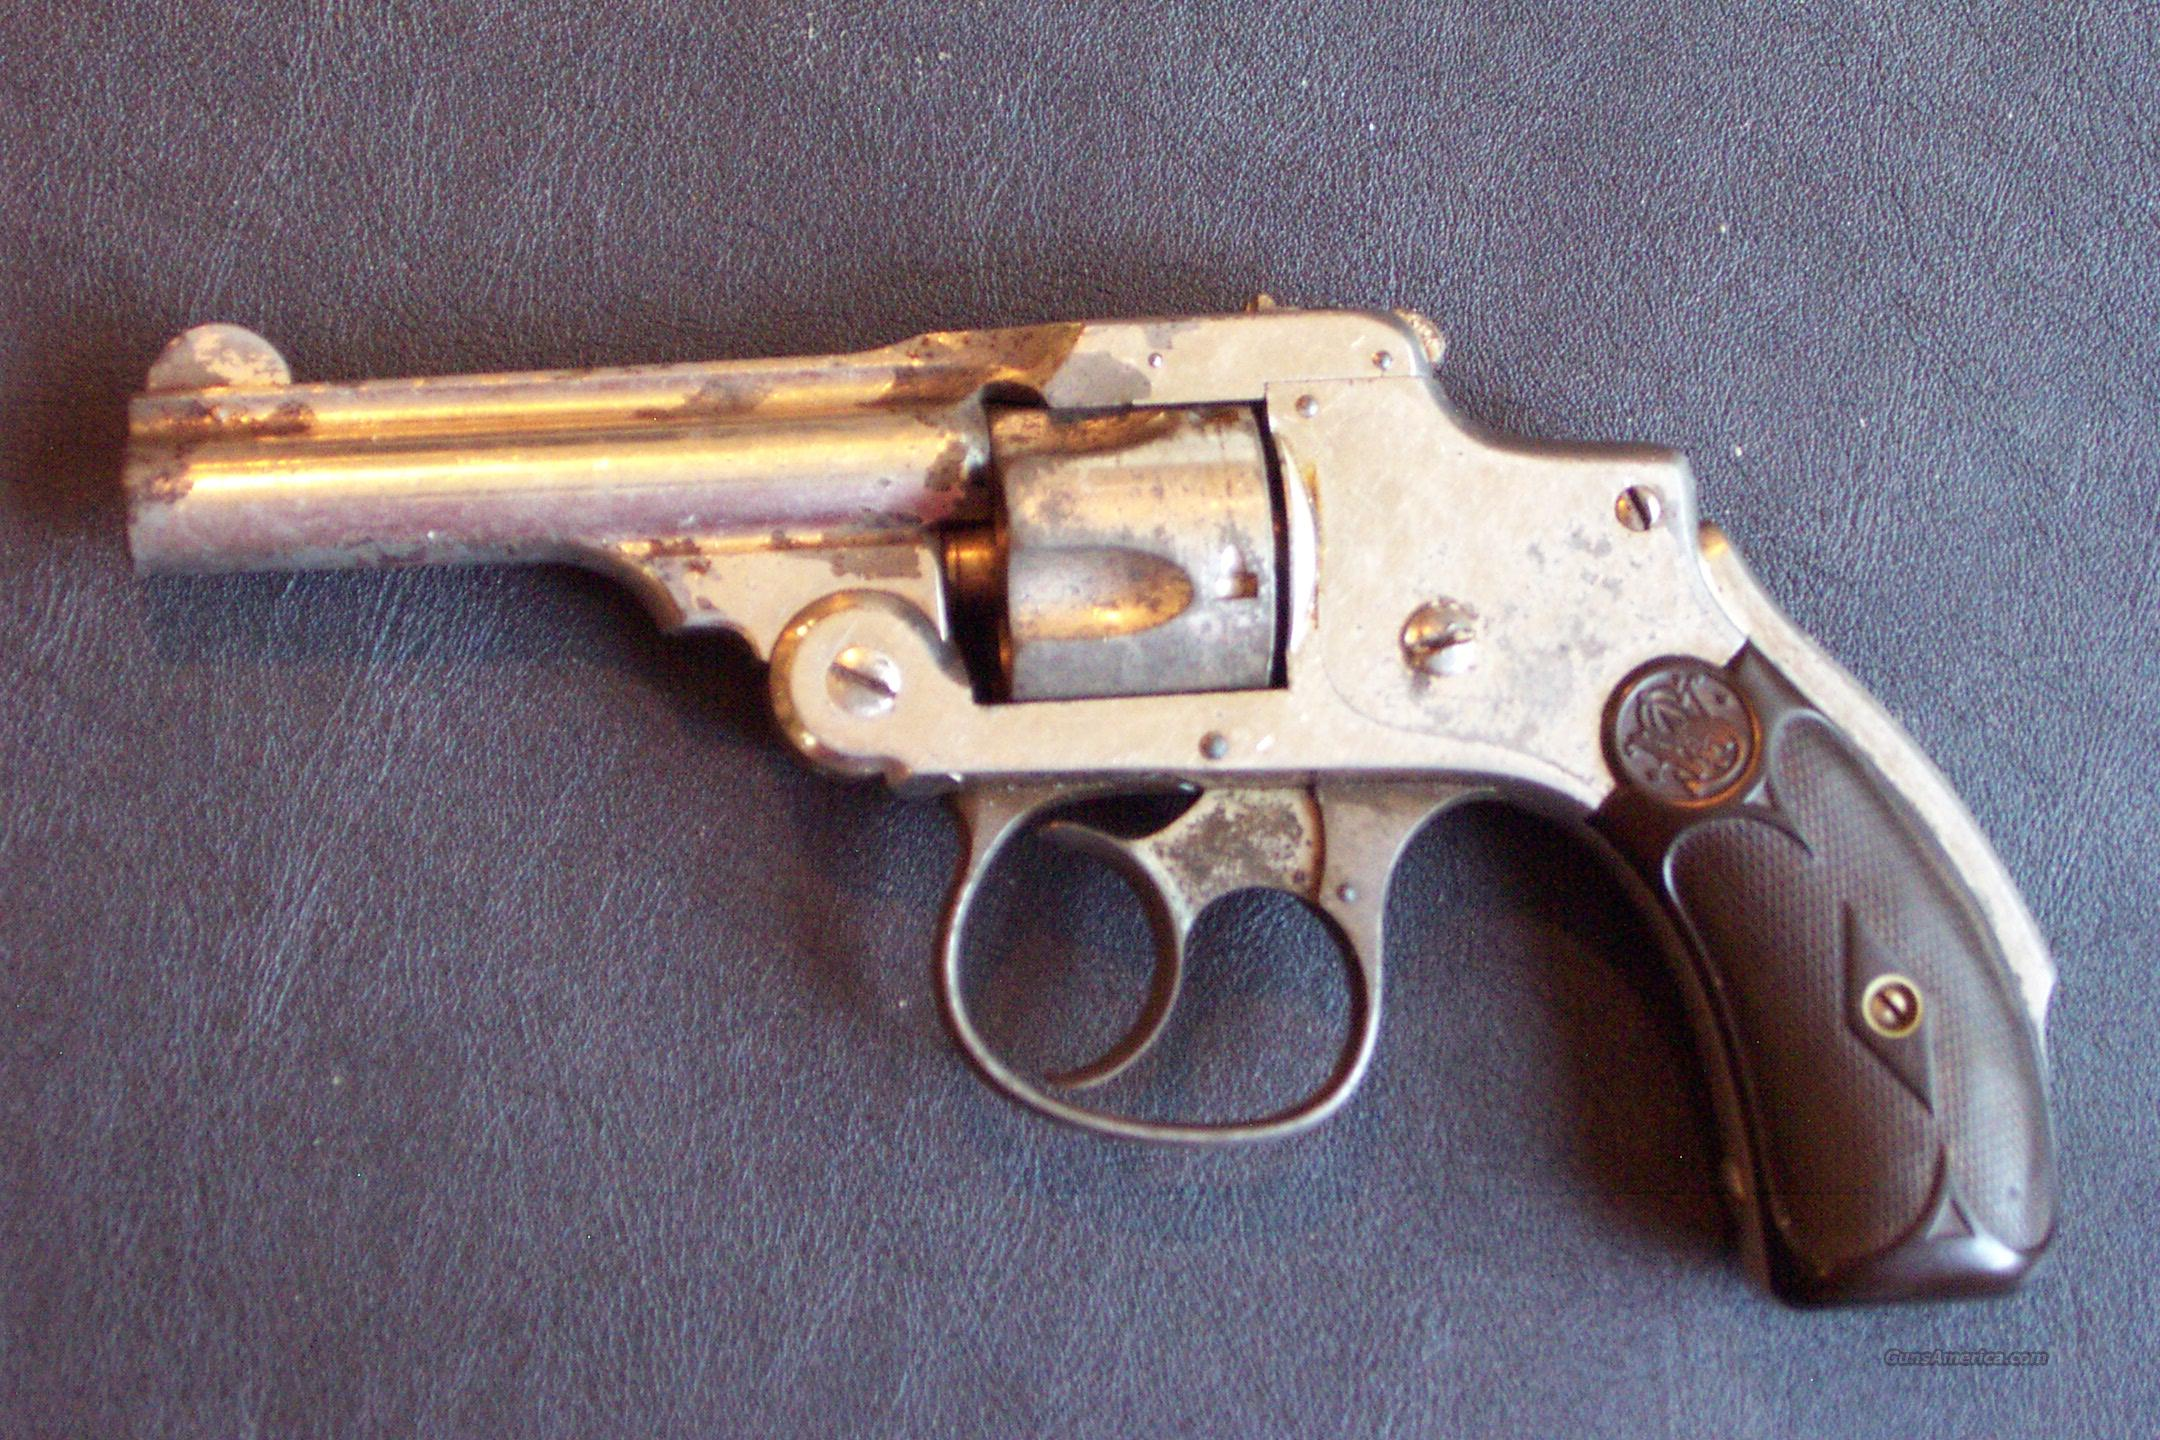 Smith & Wesson 32 cal. 5 shot - chrome  Guns > Pistols > Smith & Wesson Revolvers > Pocket Pistols